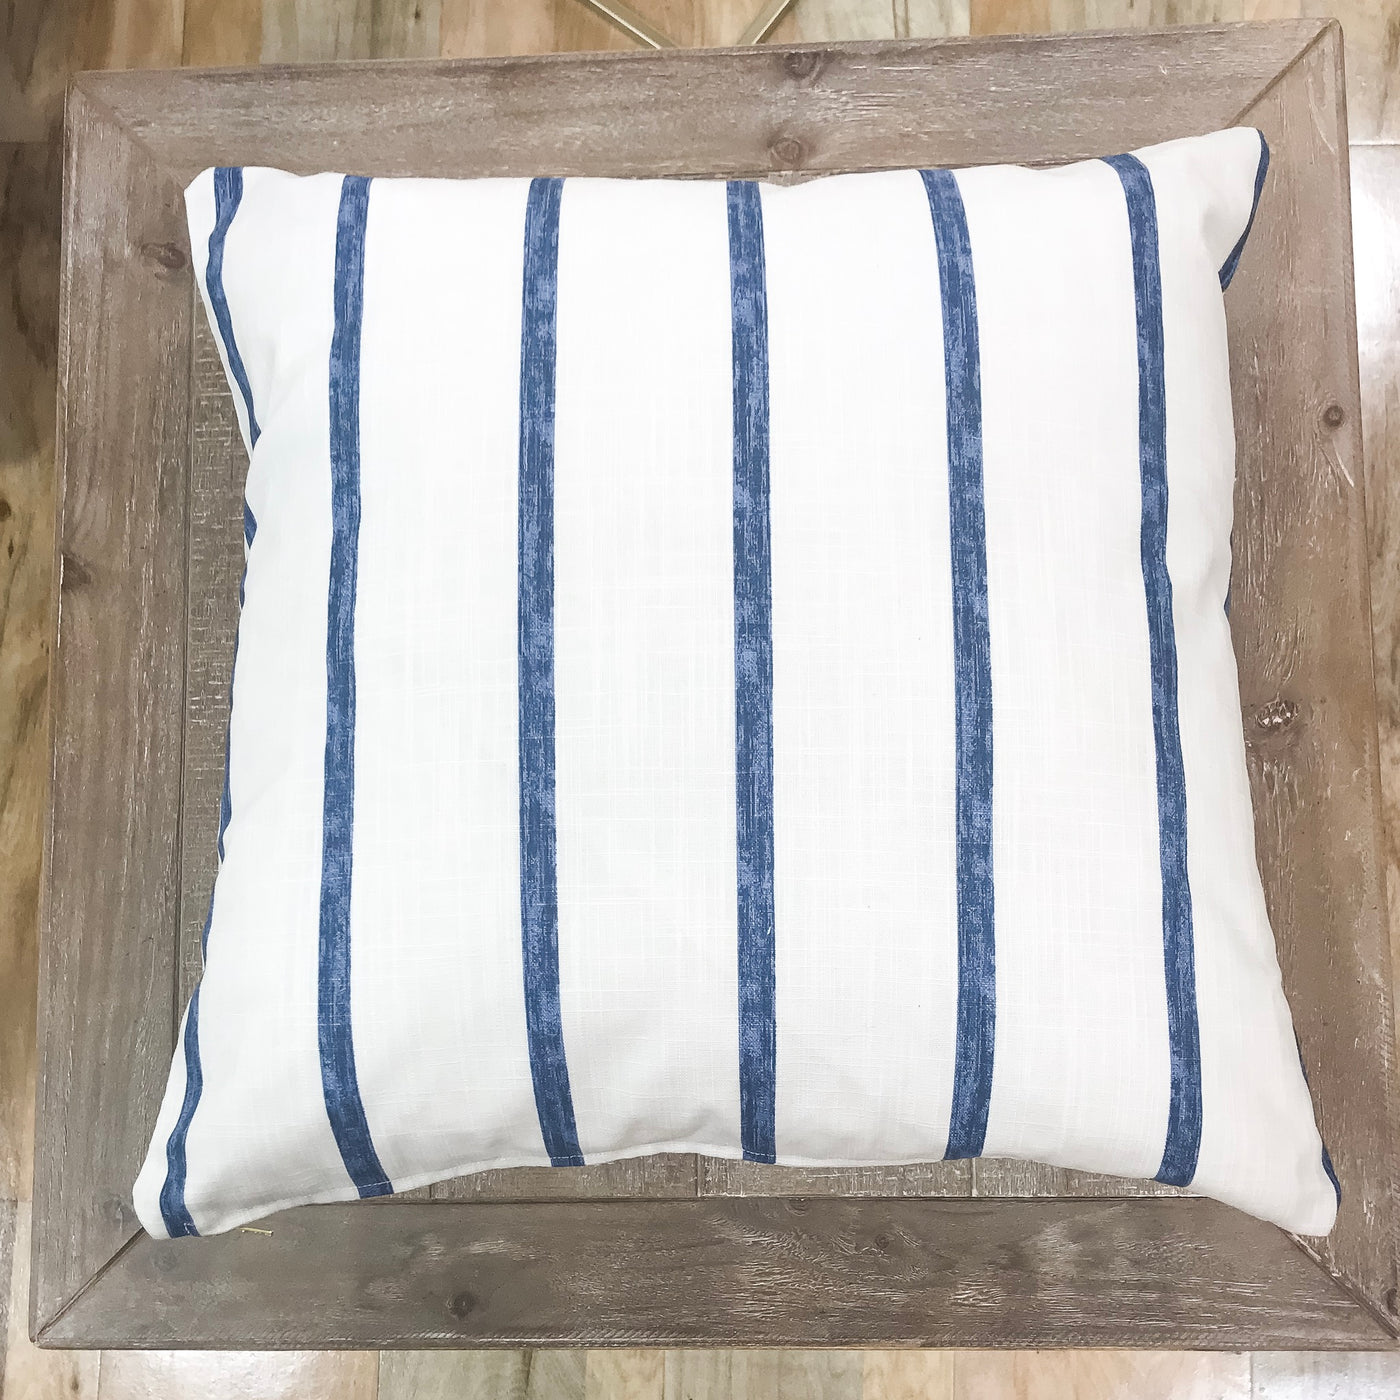 Cool, crisp blue stripe pillows - IVY - Studio Pillows